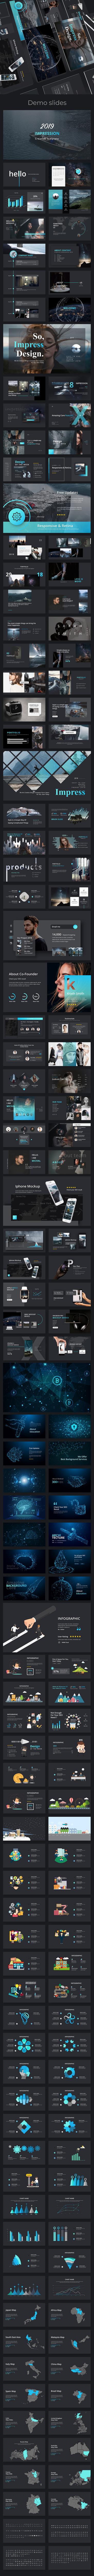 Creative 3 in 1 Bundle Powerpoint Template - 2